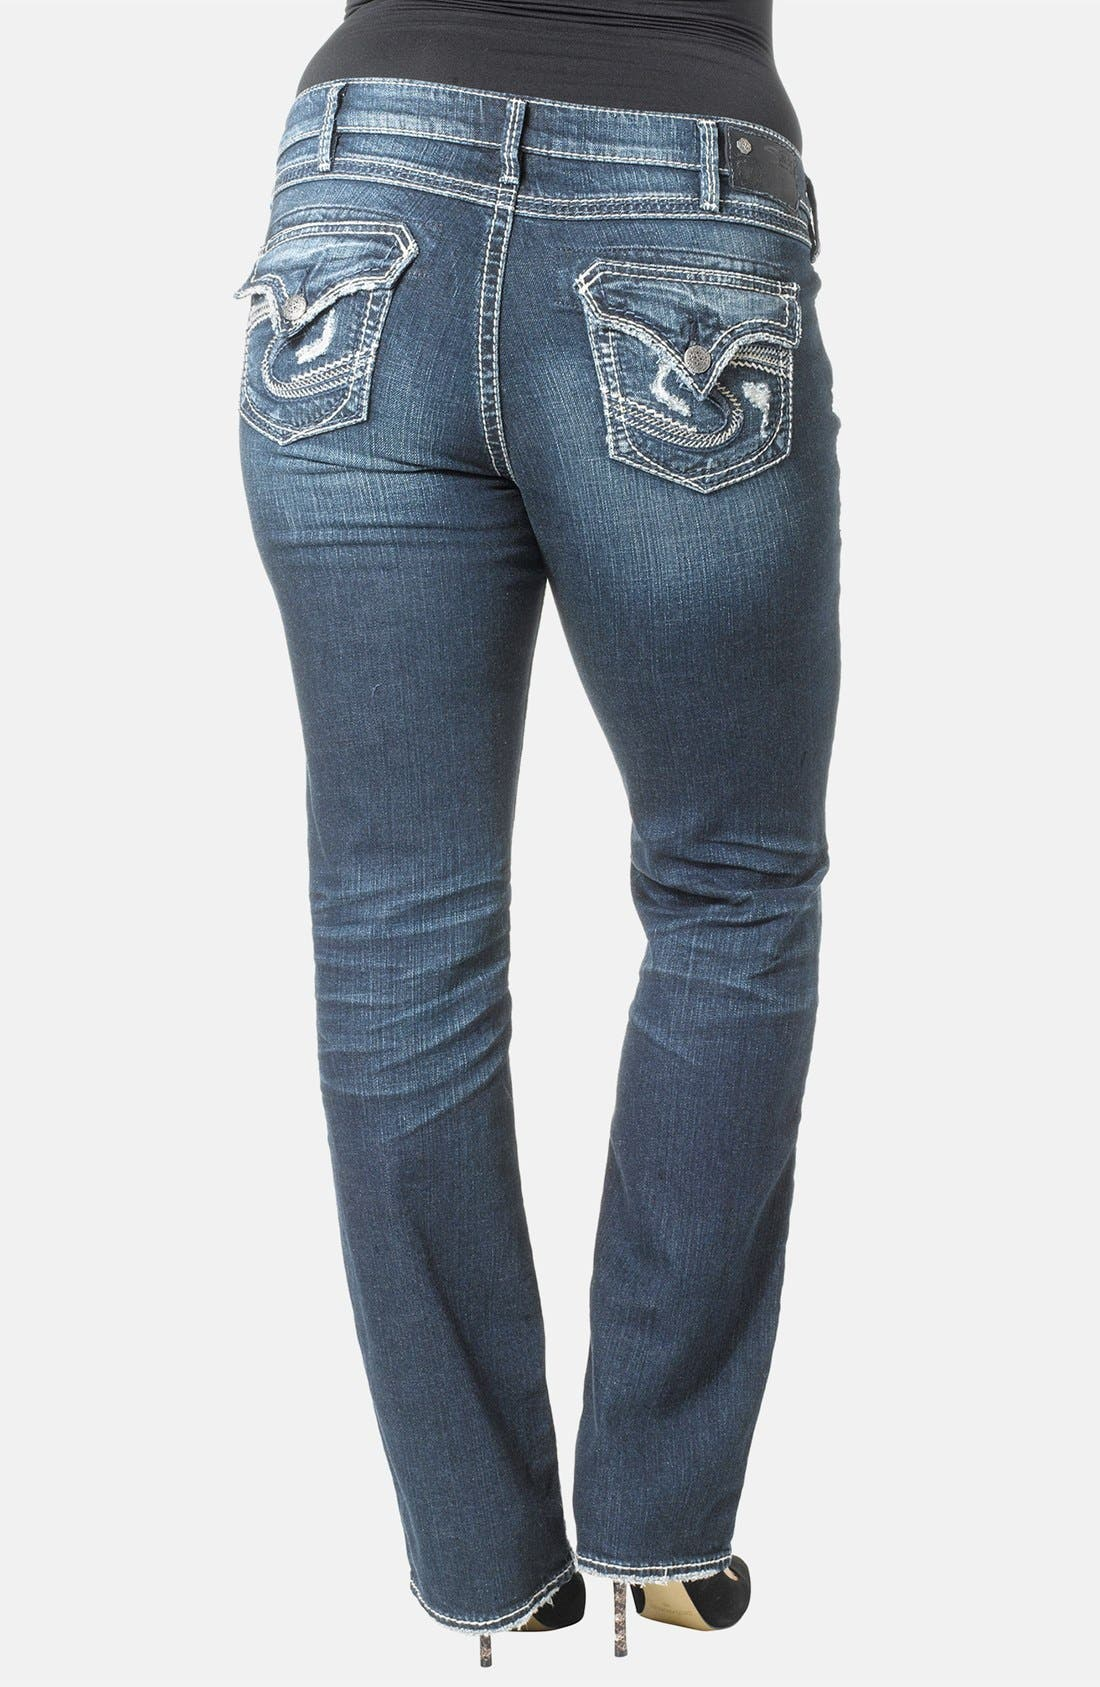 Alternate Image 2  - Silver Jeans Co. 'Aiko' Distressed Flap Pocket Straight Leg Jeans (Plus Size)